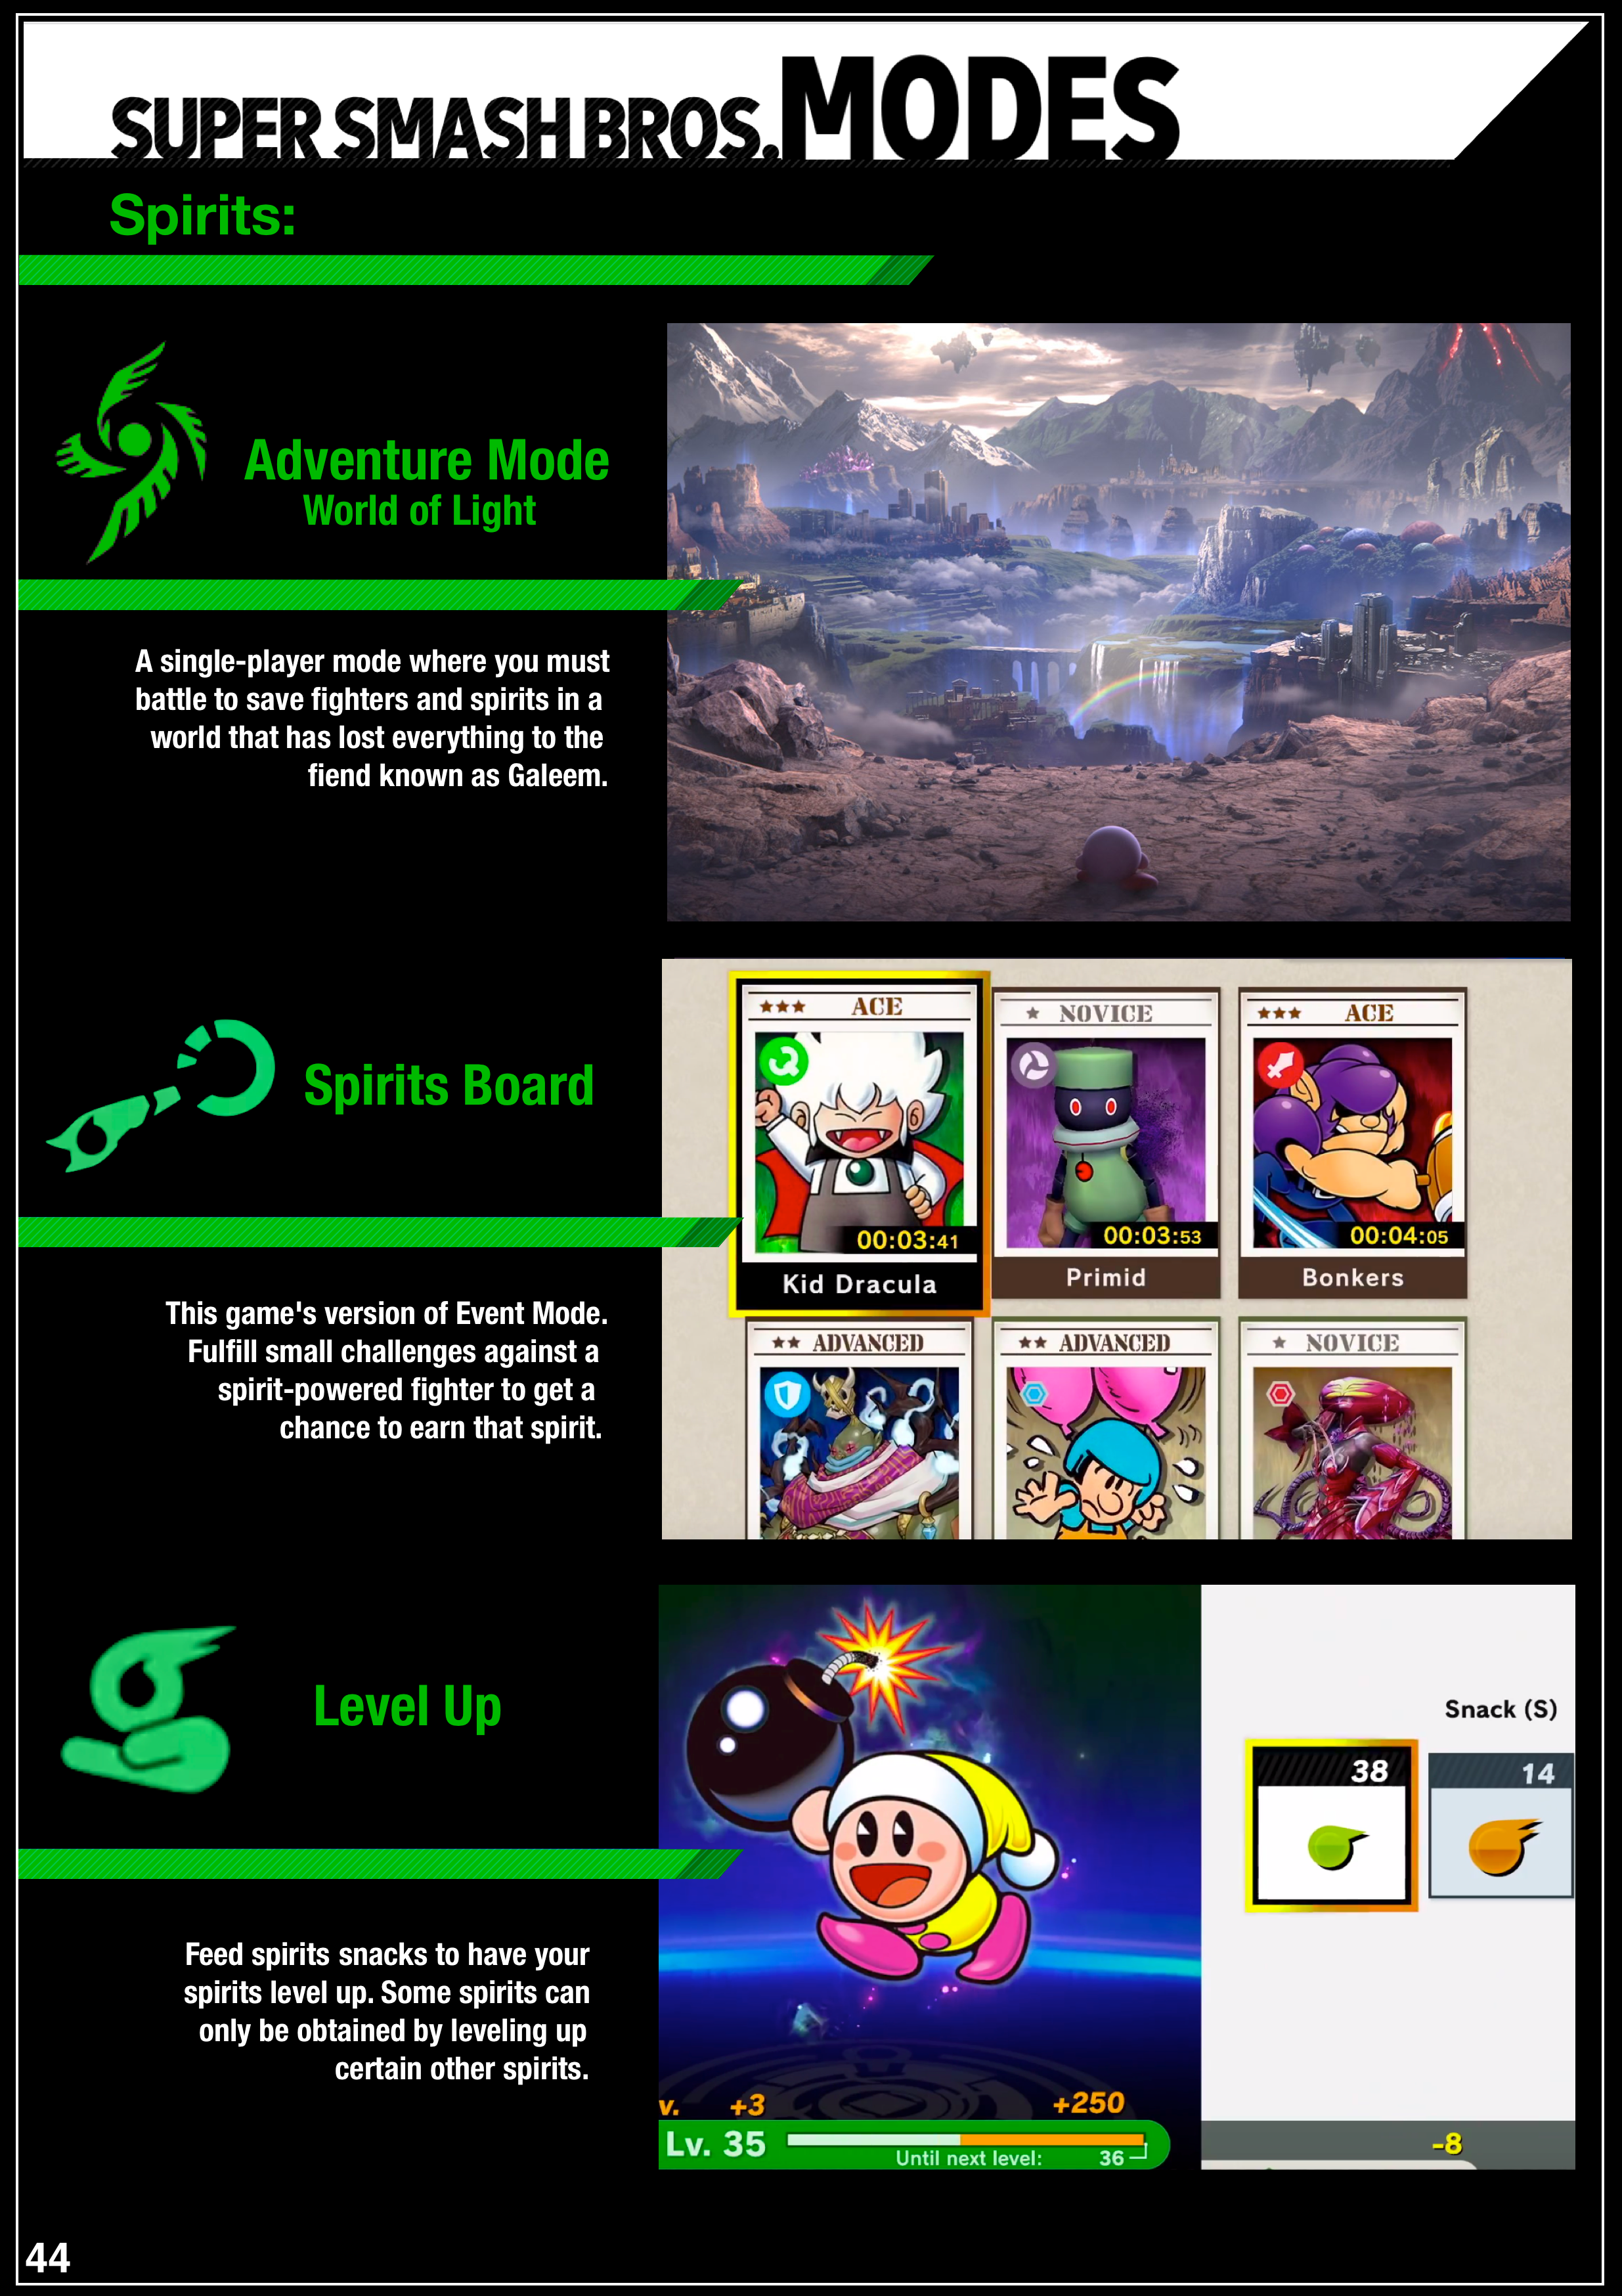 Fan-made Super Smash Bros. Ultimate manual 6 out of 6 image gallery